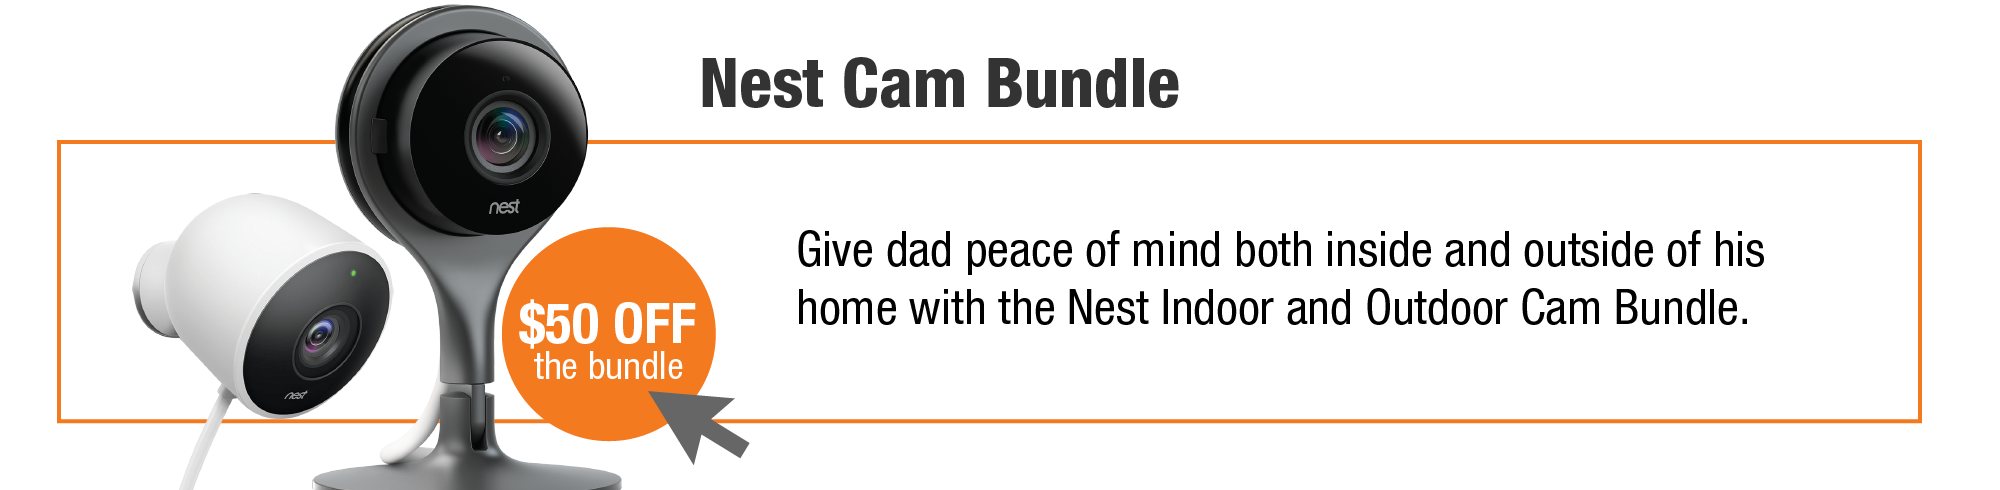 Nest Cam Bundle